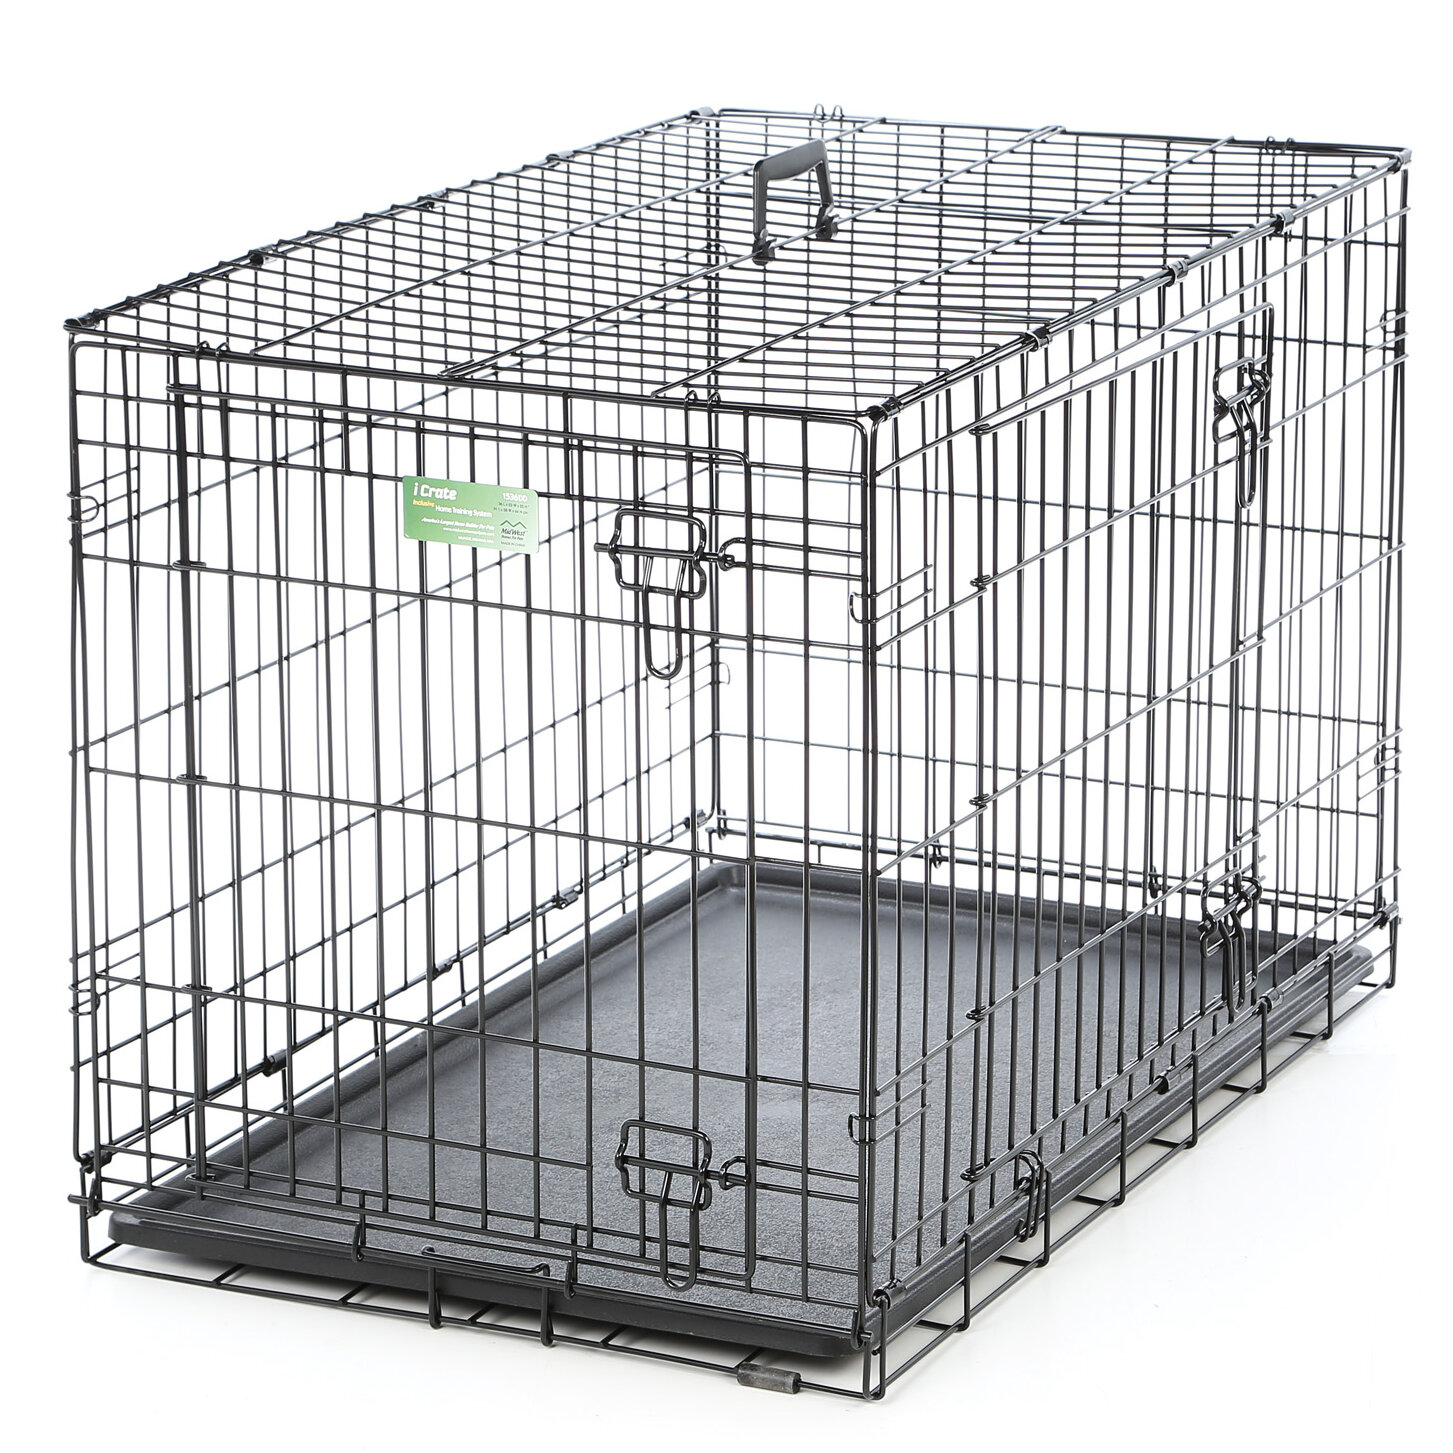 Midwest Homes For Pets Icrate Double Door Pet Crate Reviews